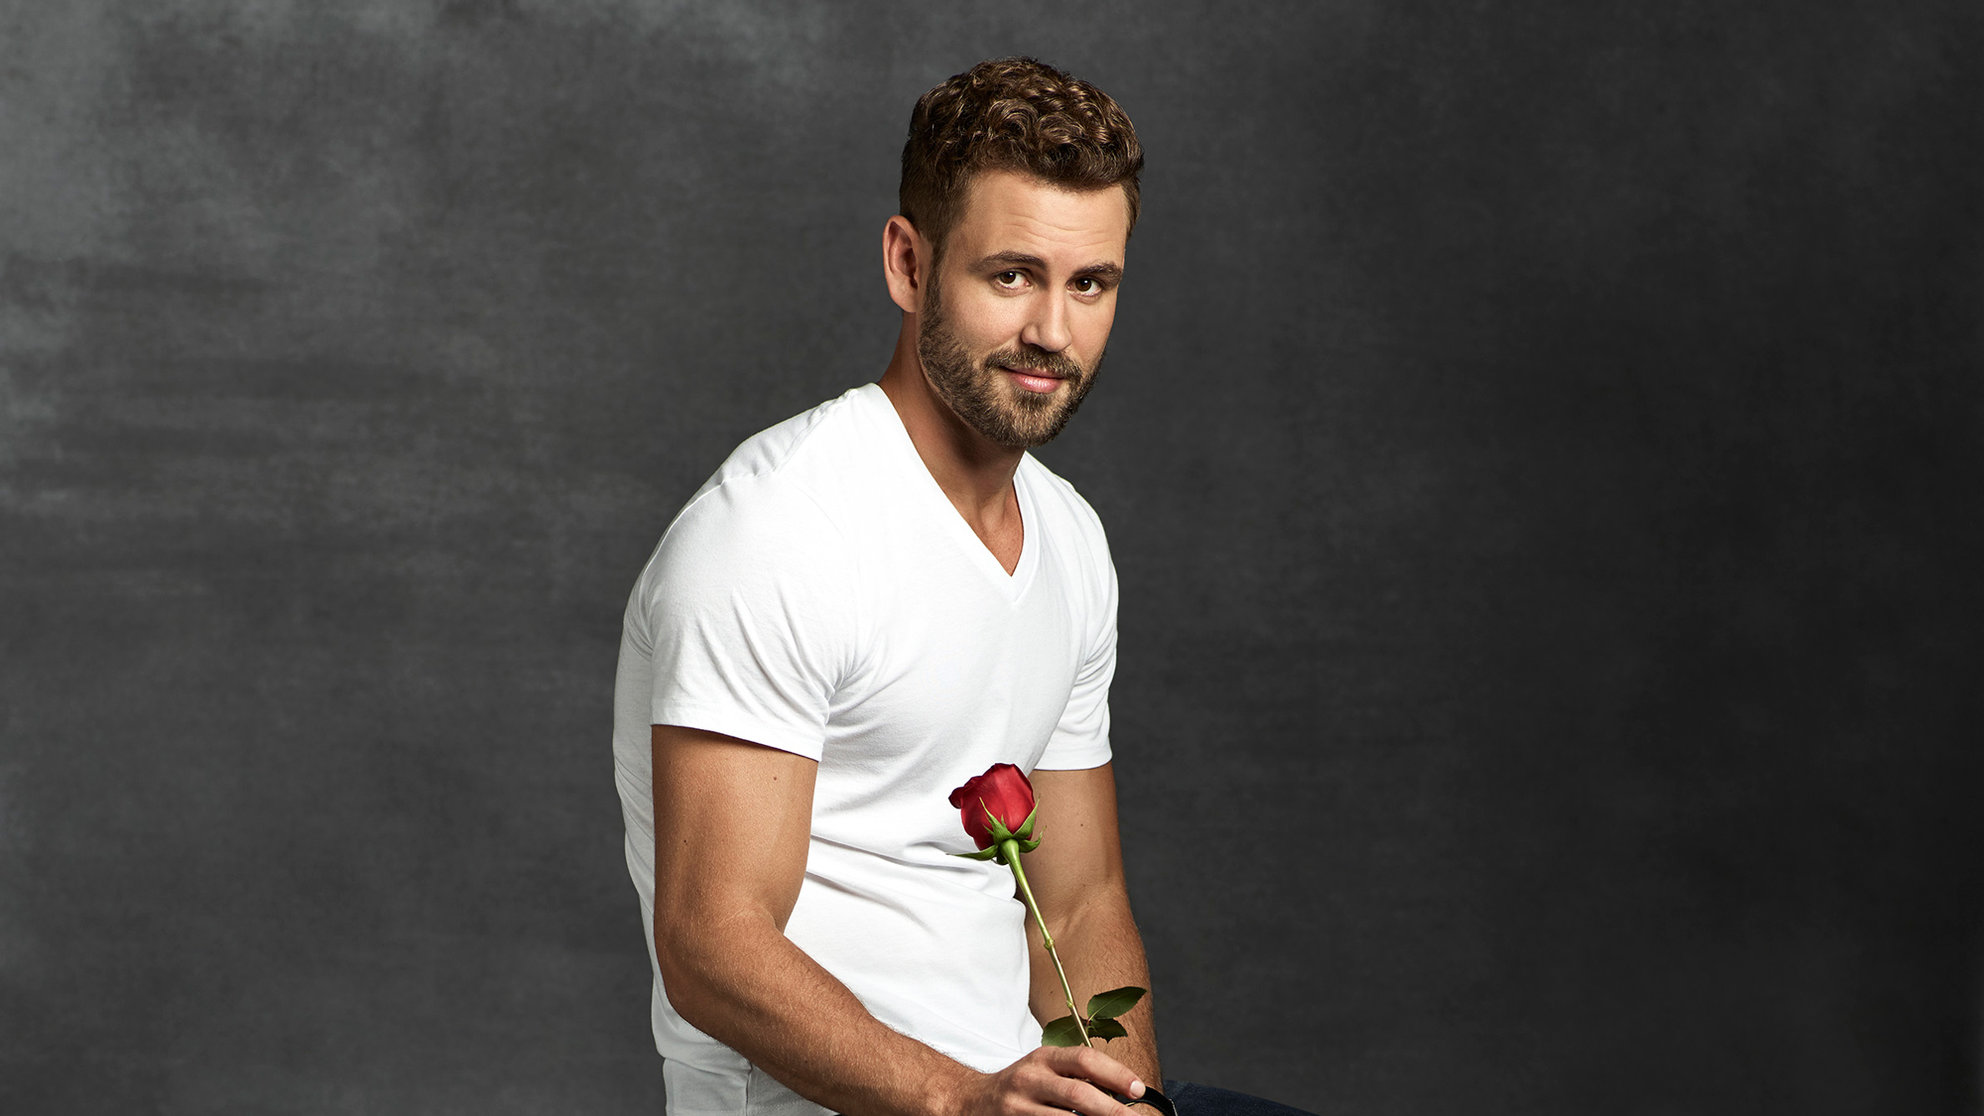 You Can't be on The Bachelor if You Have This STD—But That's a Ridiculous Rule